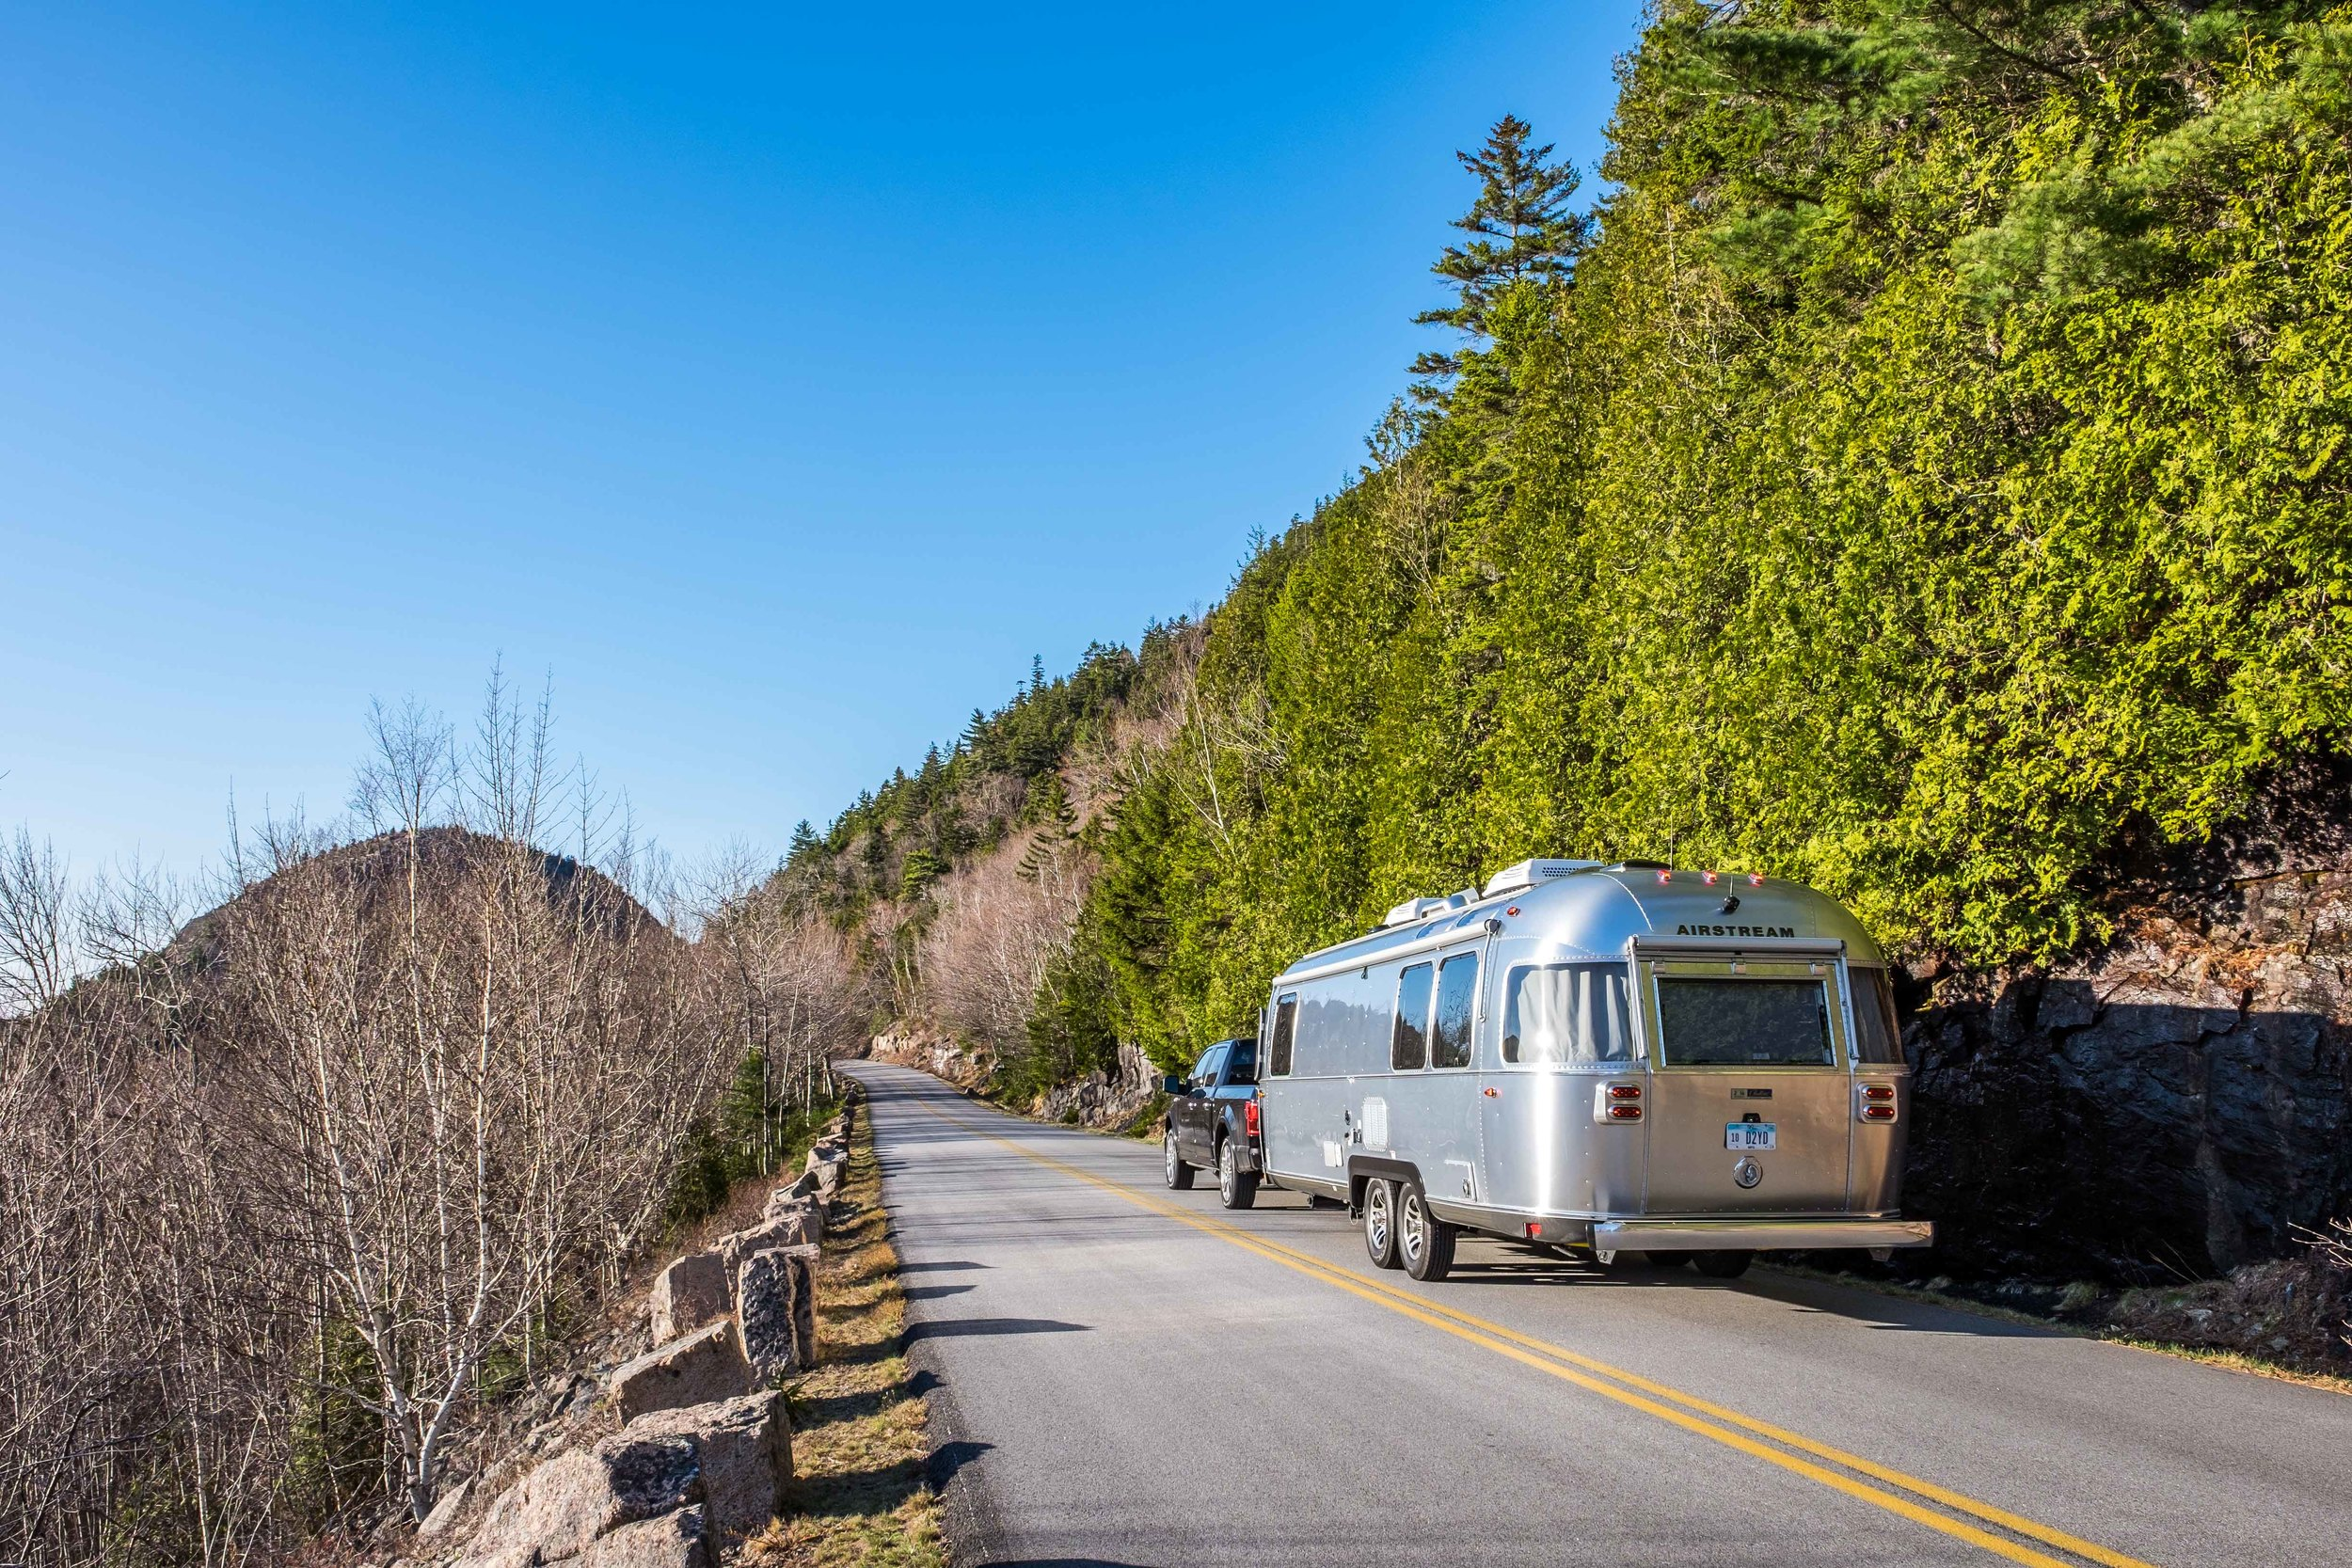 The Pendleton Limited Edition National Parks Airstream on Park Loop Drive in Acadia National Park in Maine.